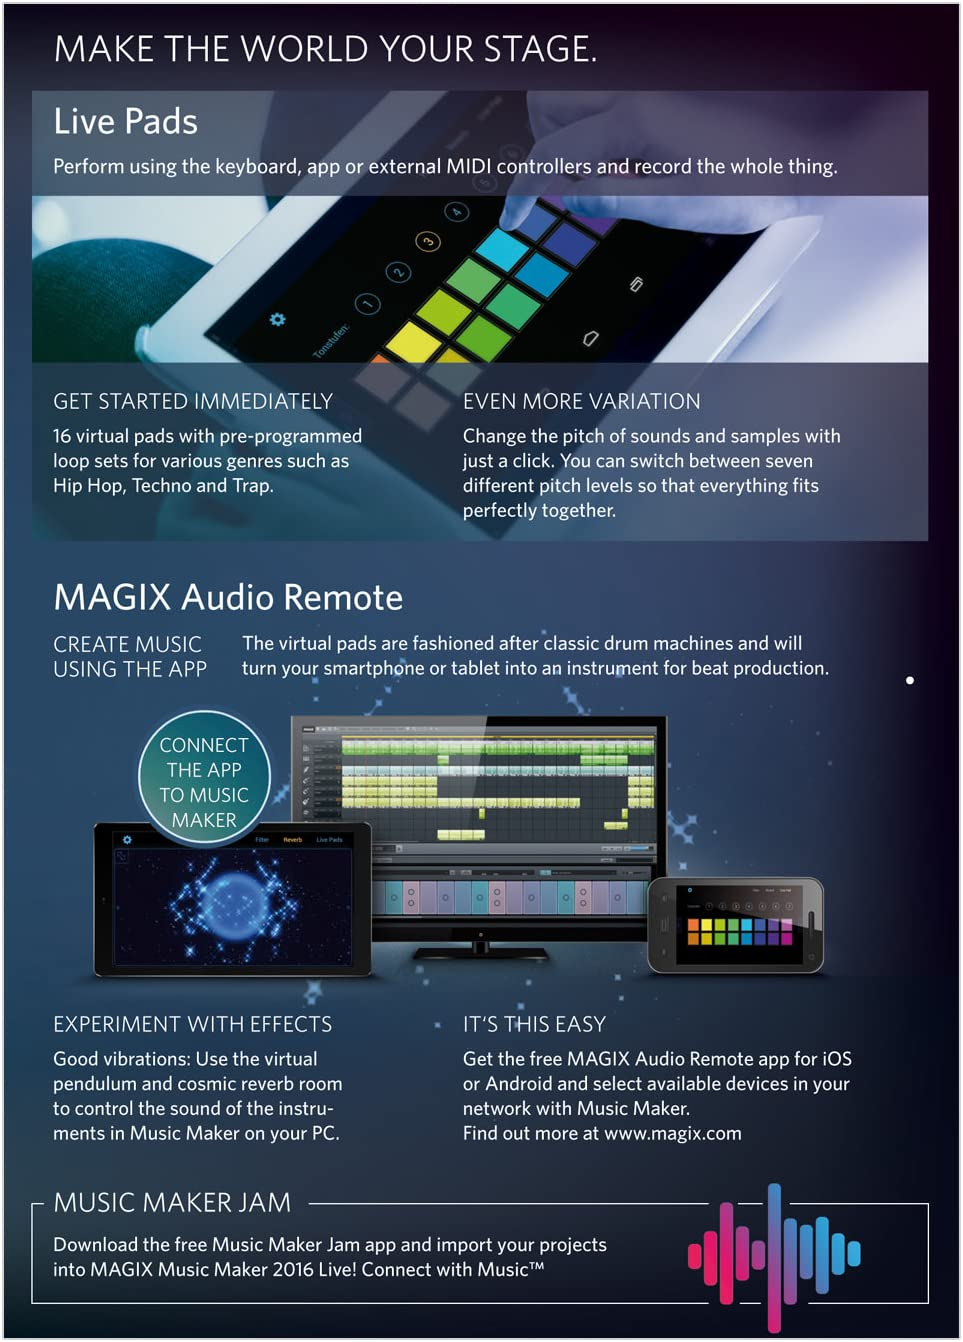 BRAND NEW RETAIL BOX WITH DOWNLOADABLE PROGRAM. MAGIX MUSIC MAKER 2016 LIVE